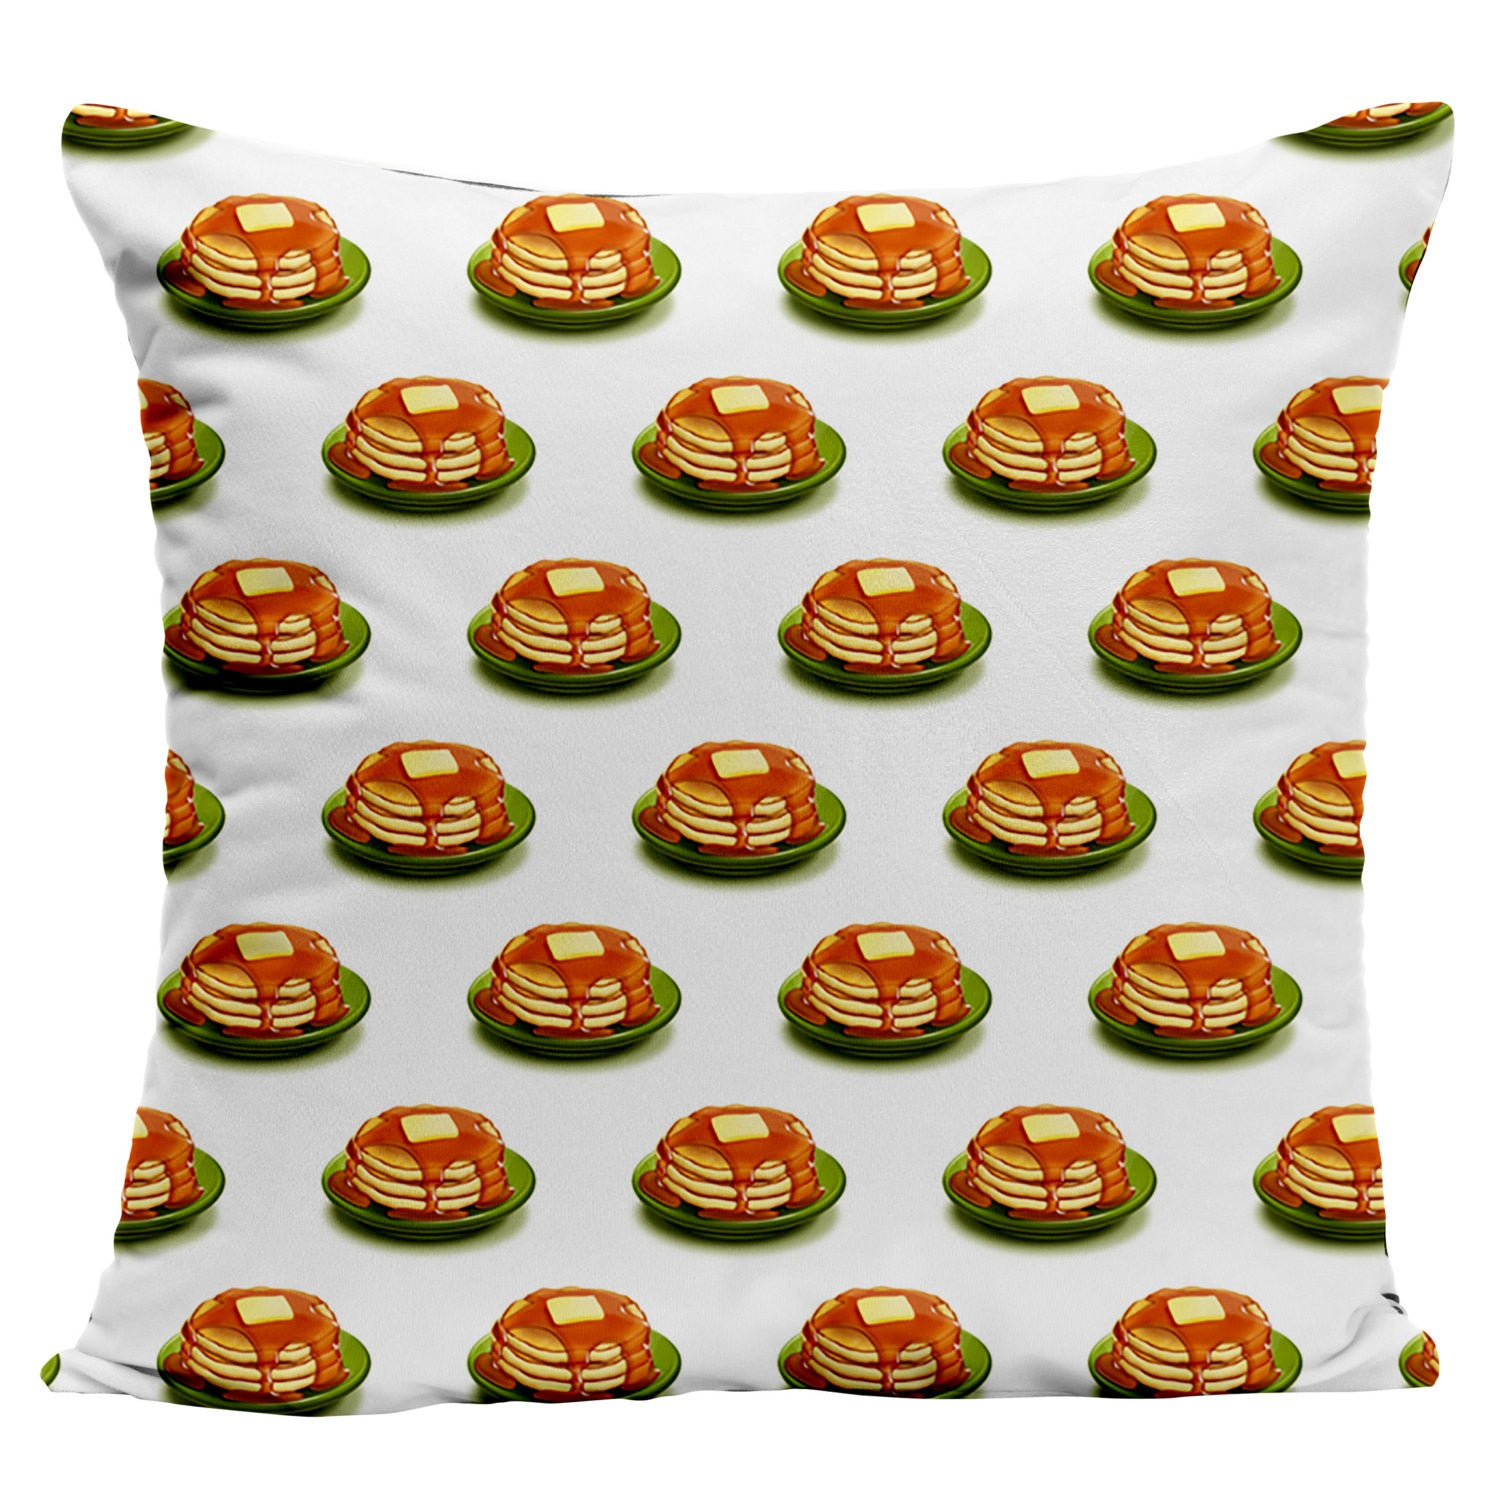 Pancakes Pillow - Shweeet